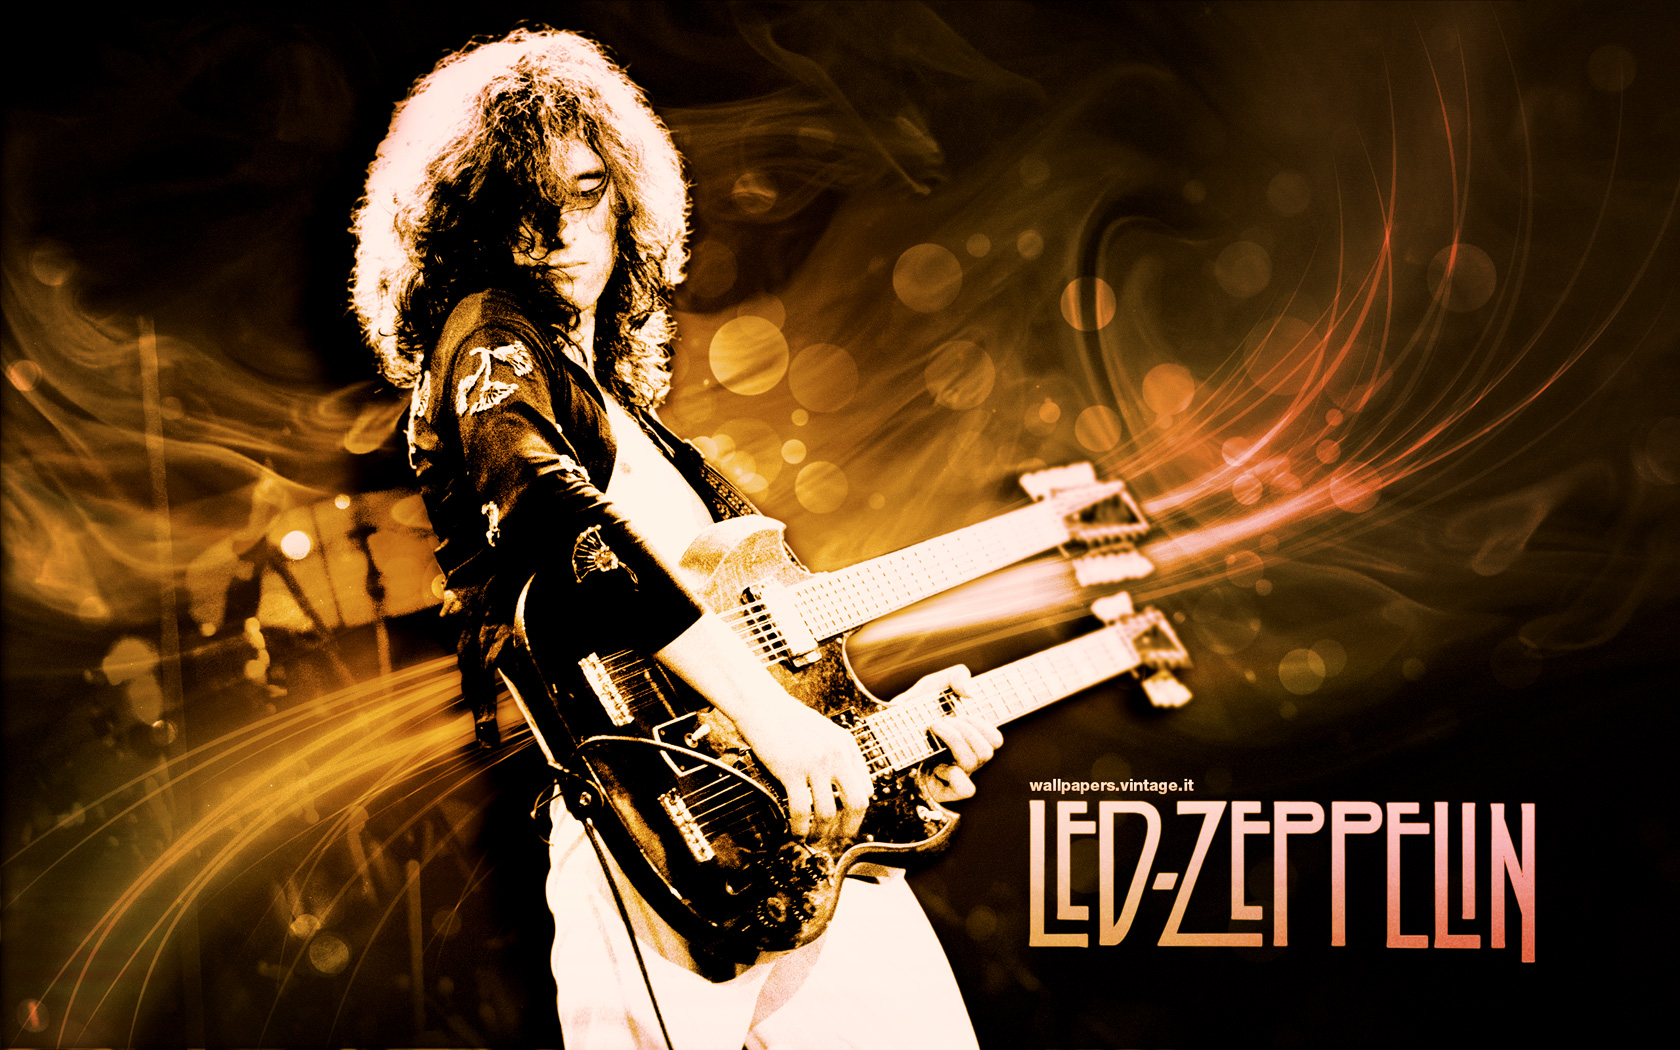 Led Zeppelin wallpaper Free Desktop HD iPad iPhone wallpapers hM6uETB3